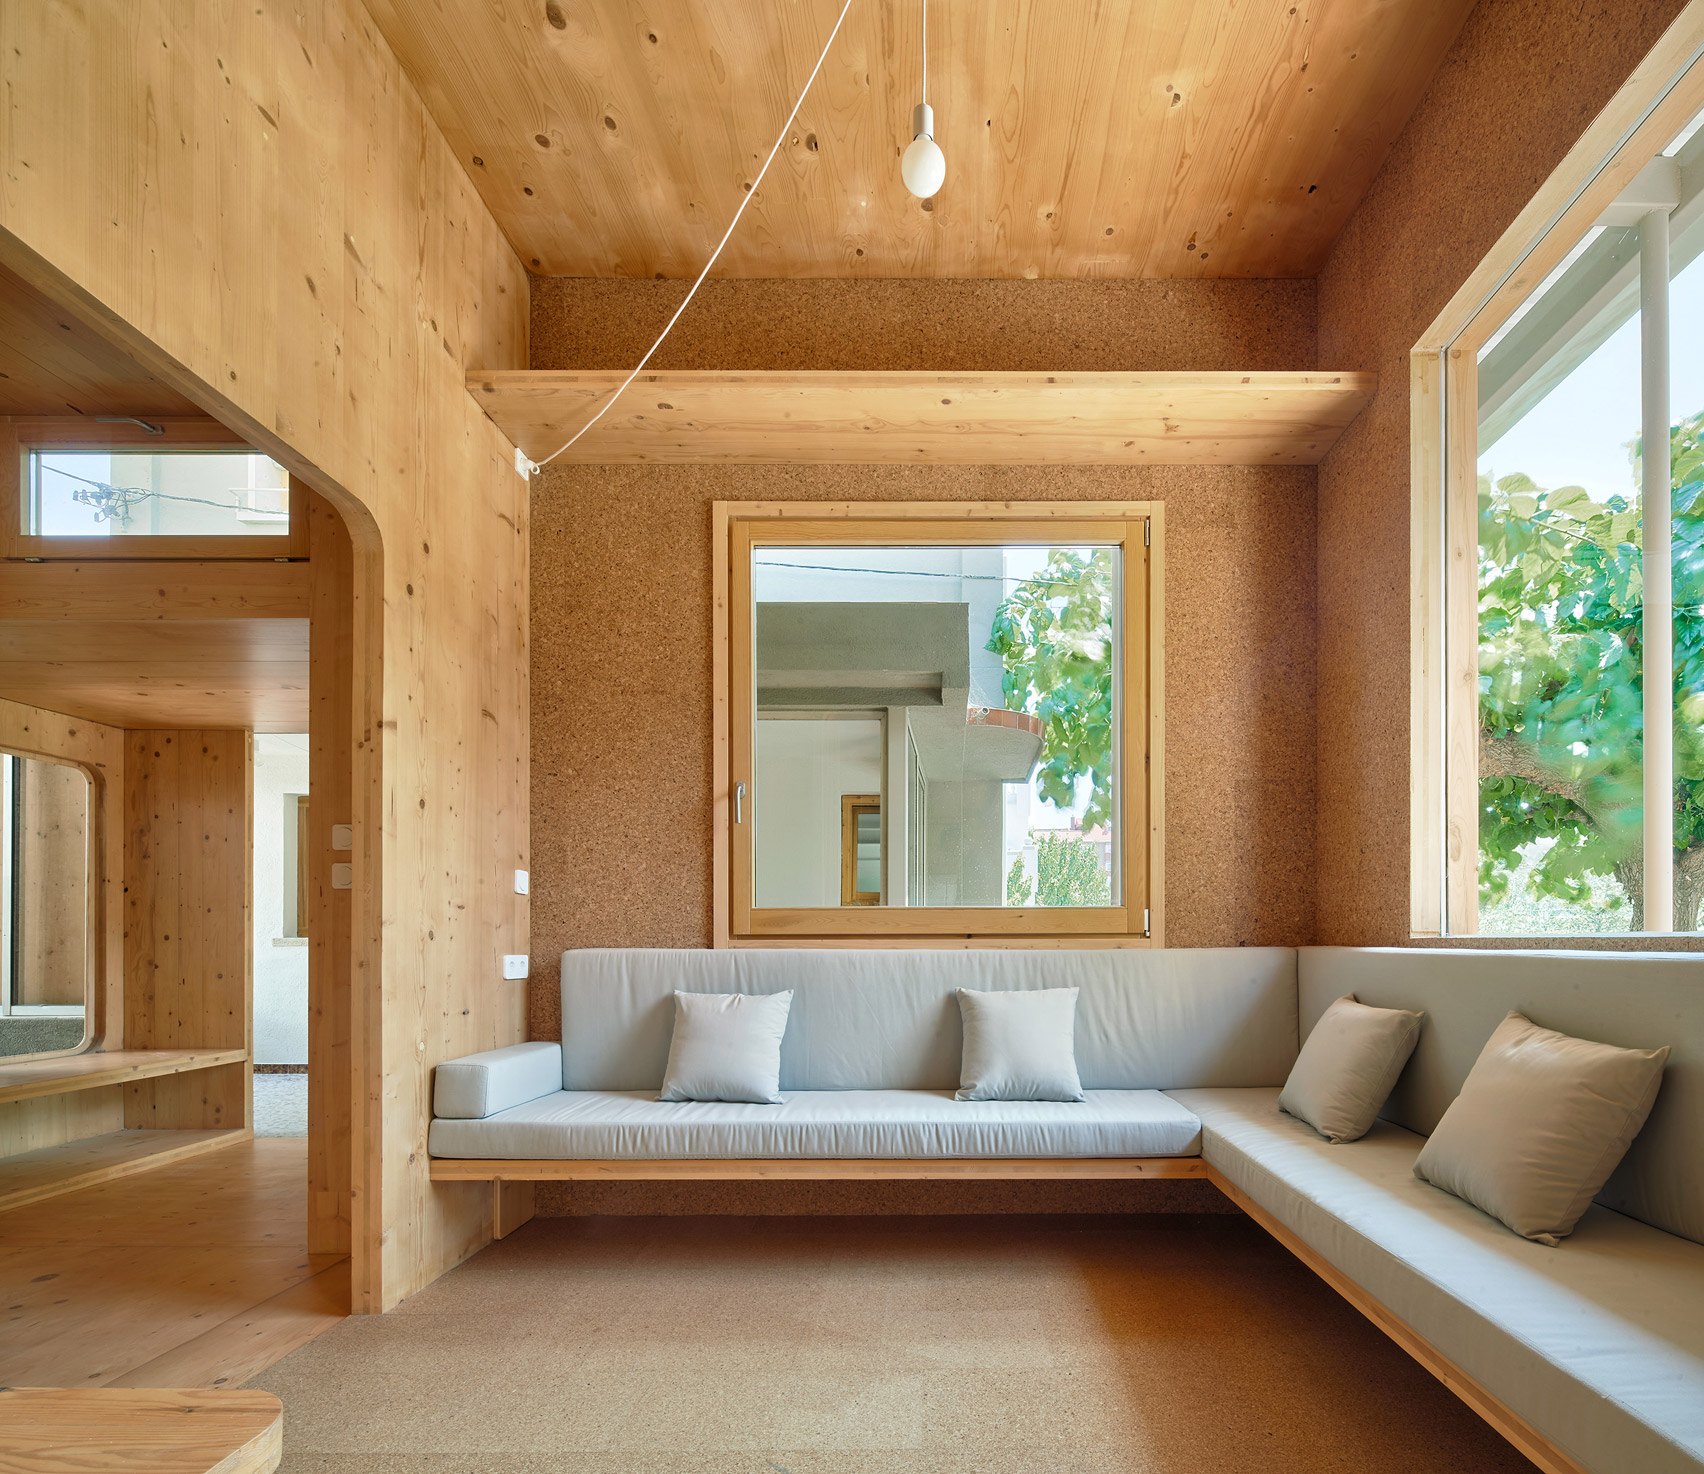 Built in sofa with pale upholstery sits below large square windows by Aixopluc